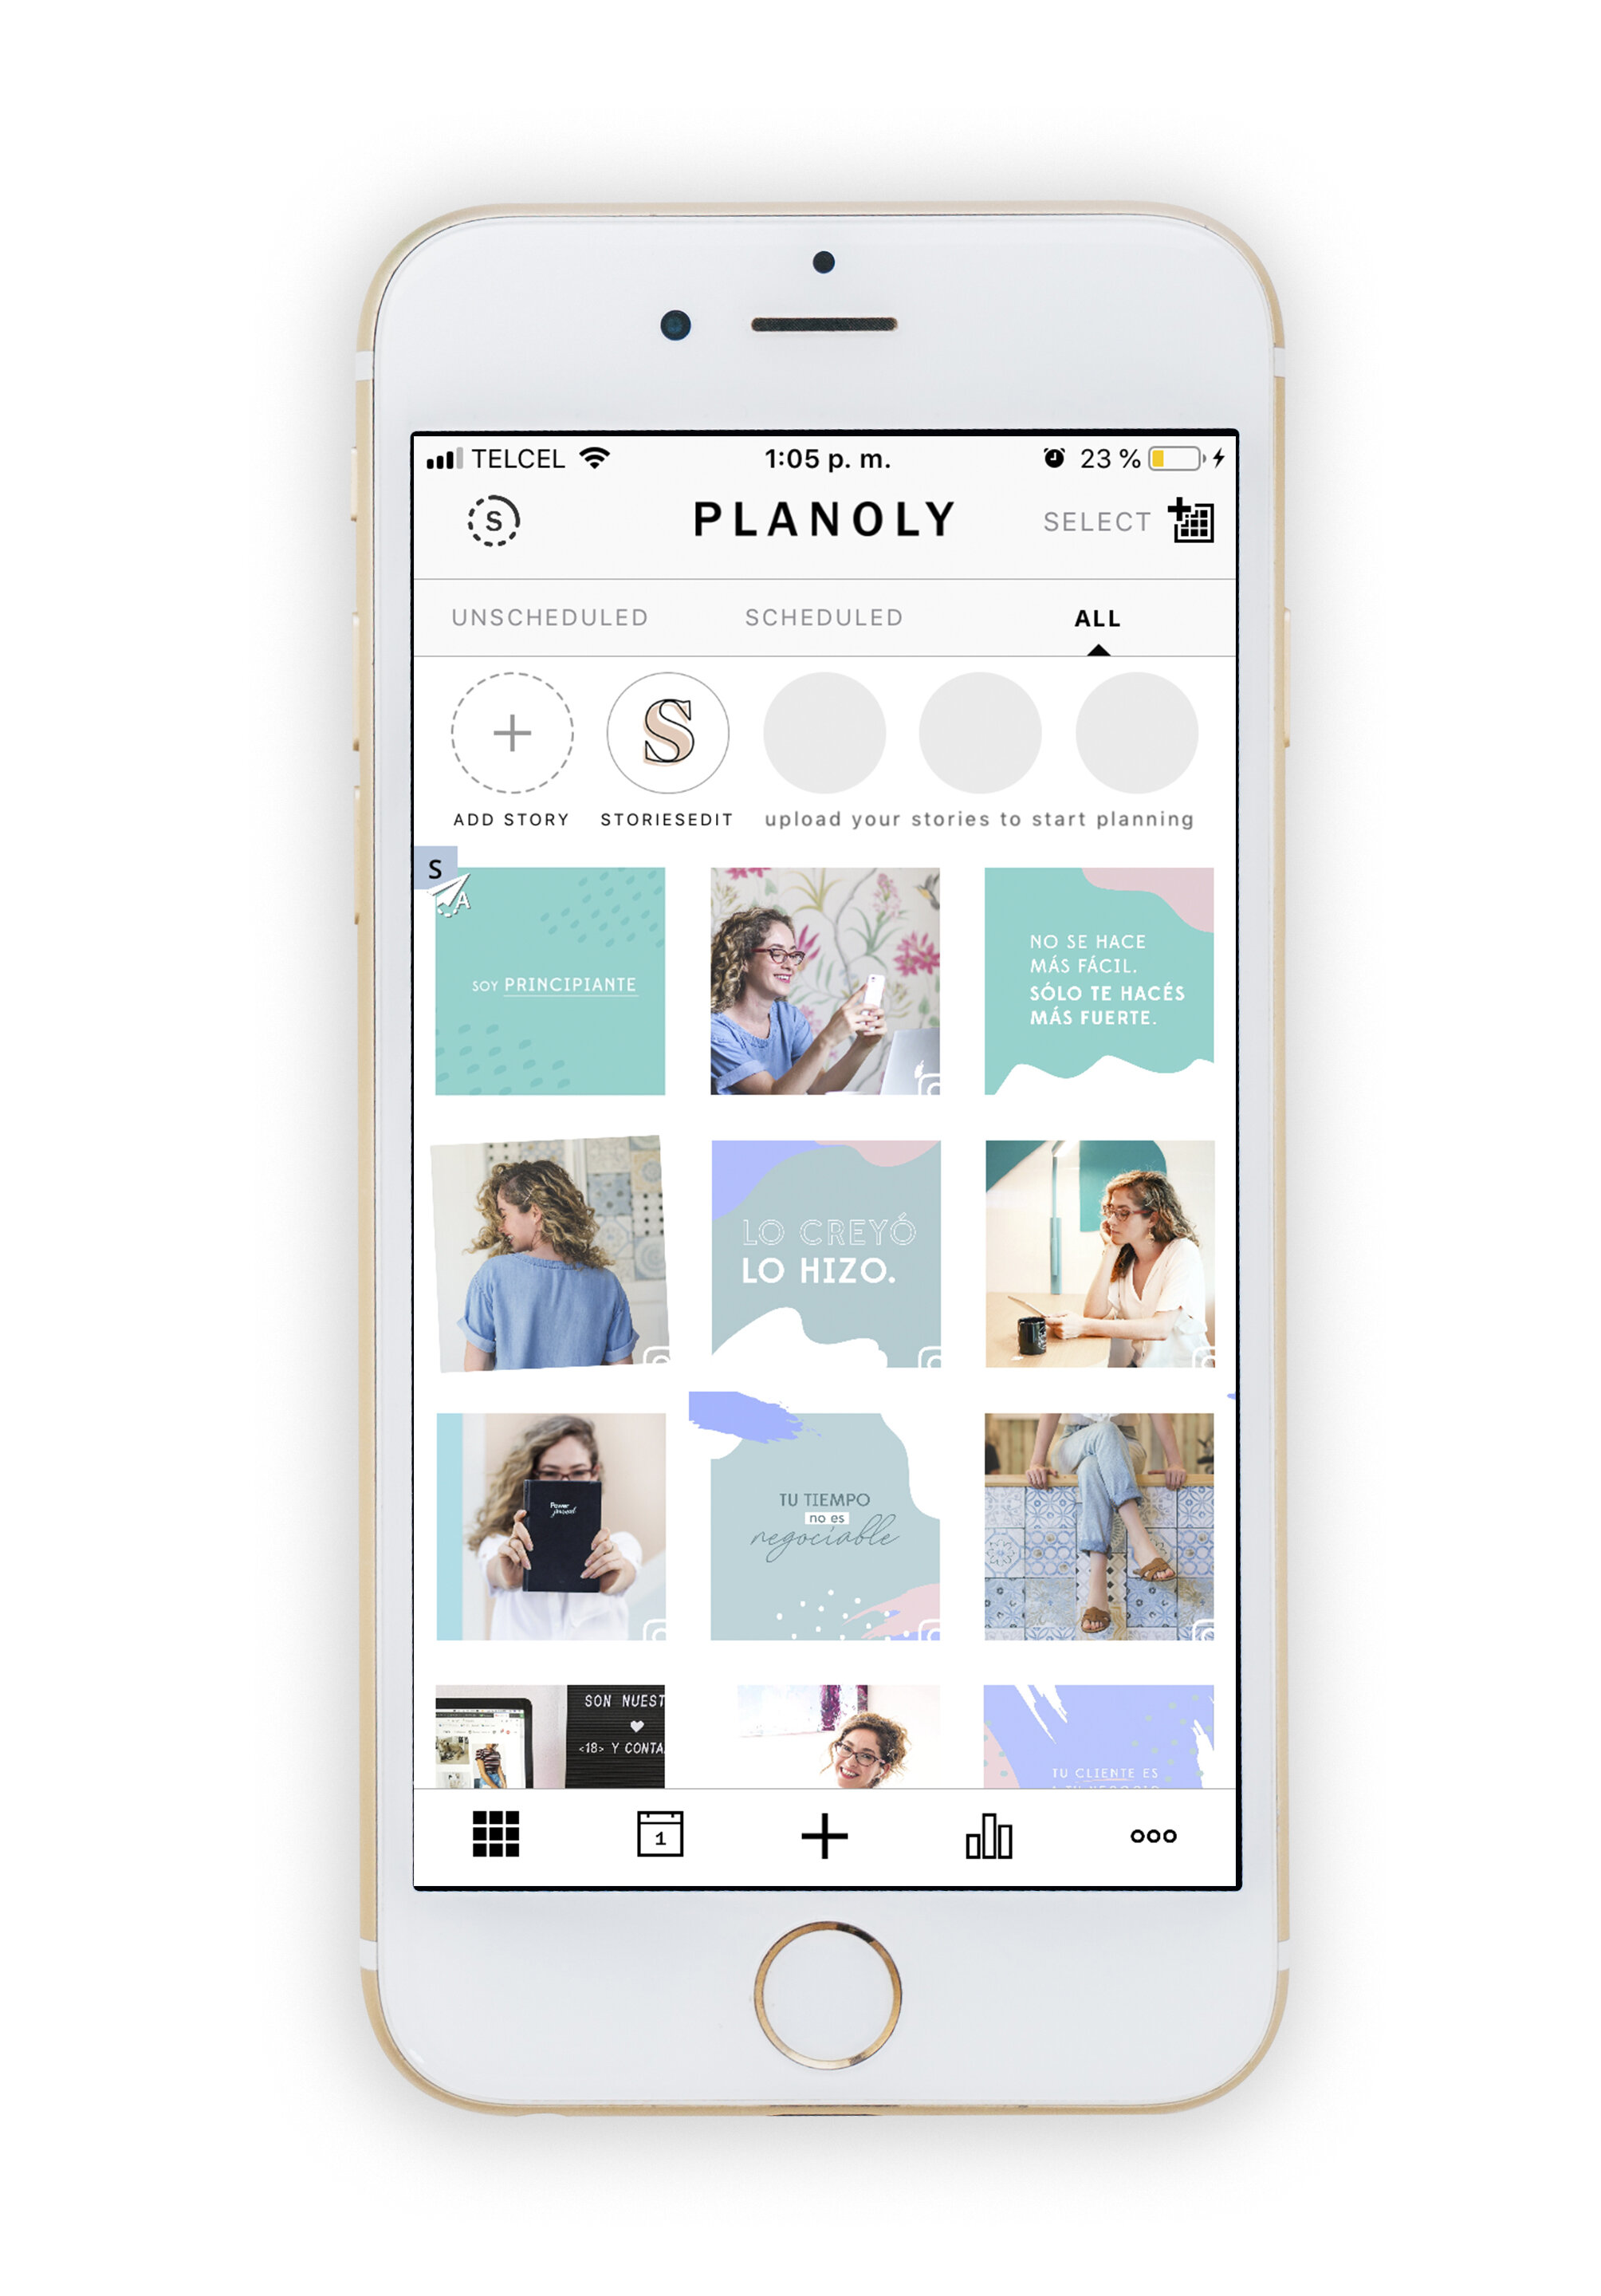 apps_favoritas_planoly2.jpg